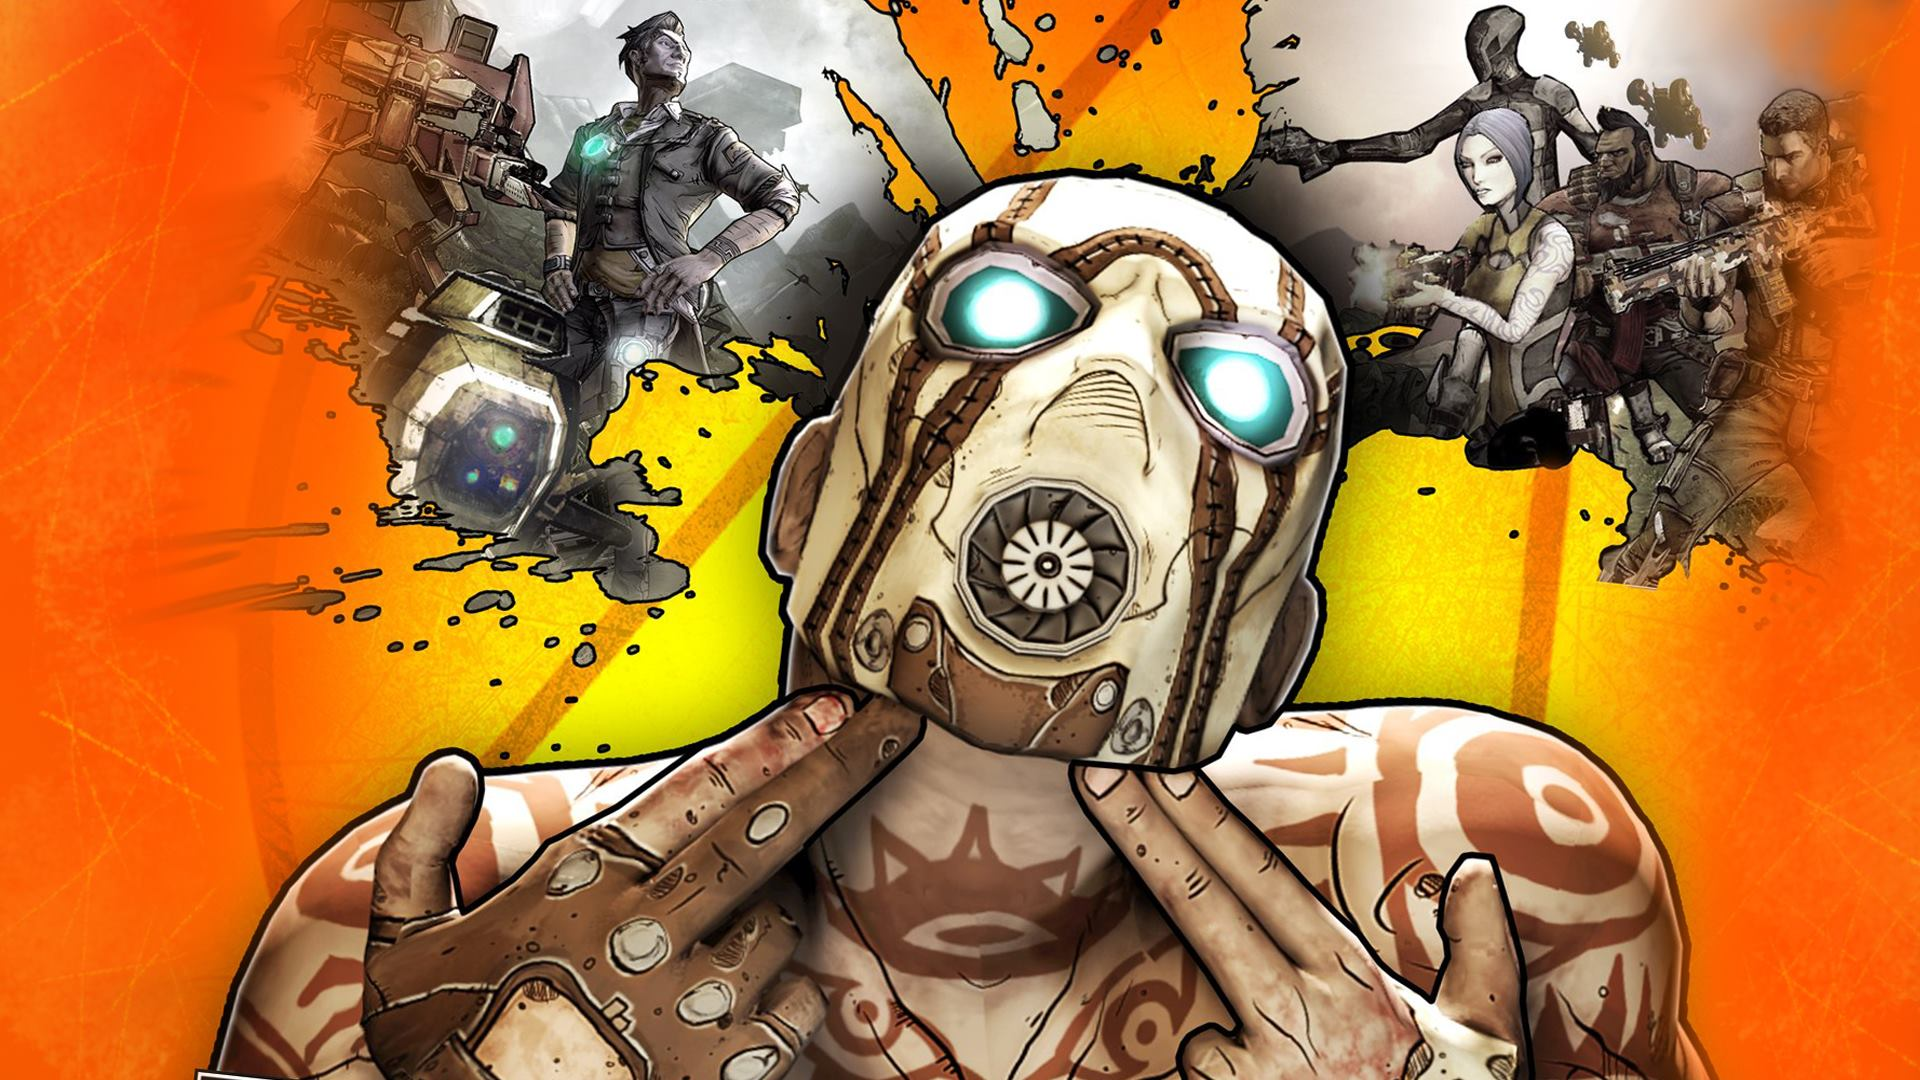 borderlands full hd wallpaper and background image | 1920x1080 | id